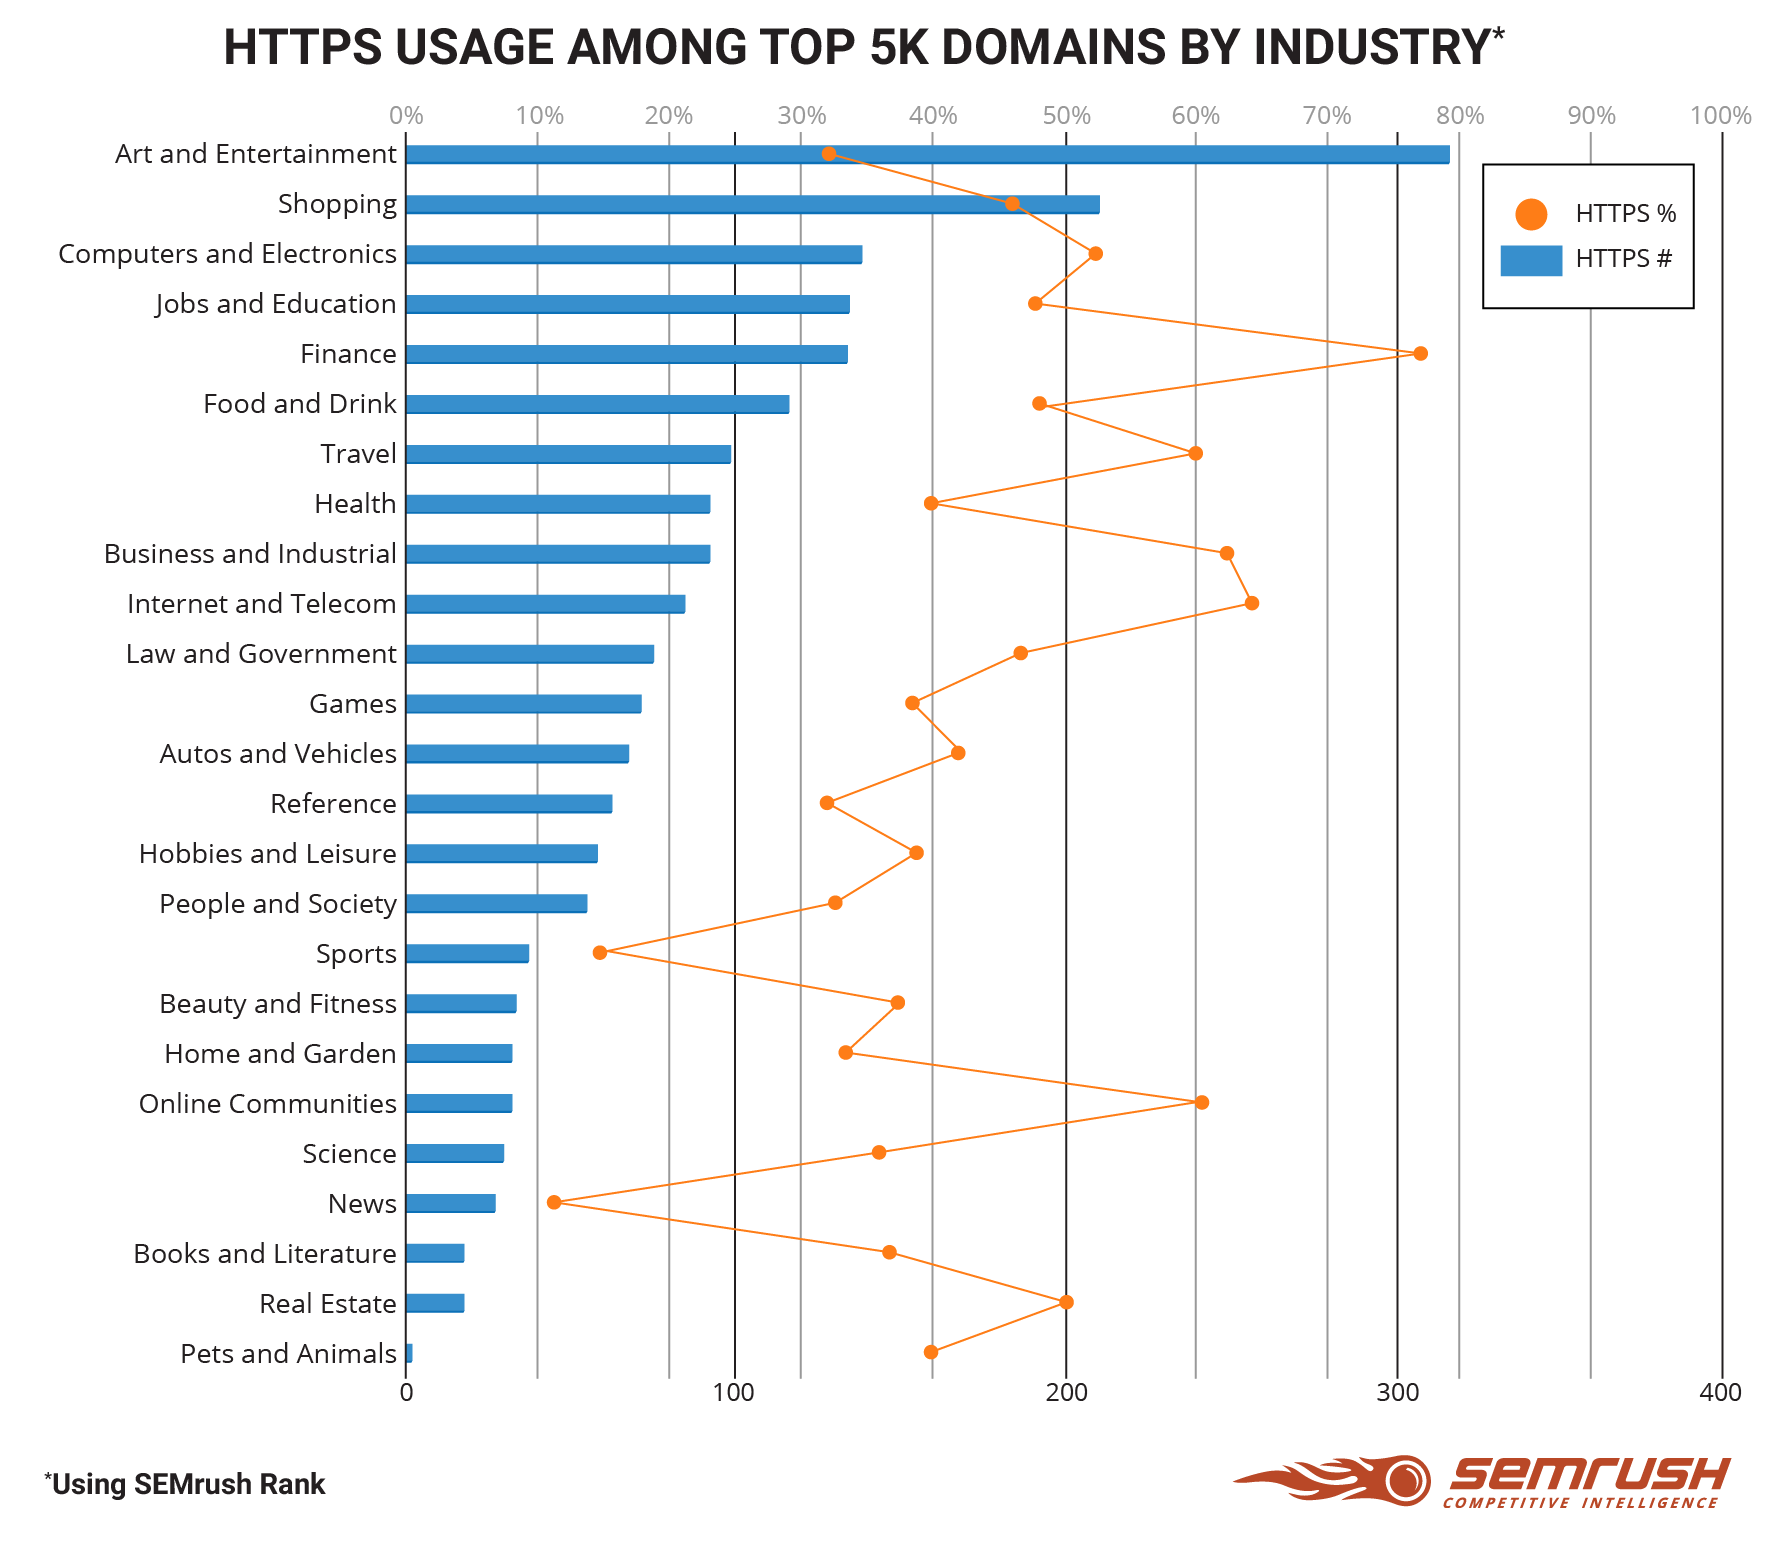 Why You Should Move Your Site to HTTPS: SEMrush Data Study. Image 2